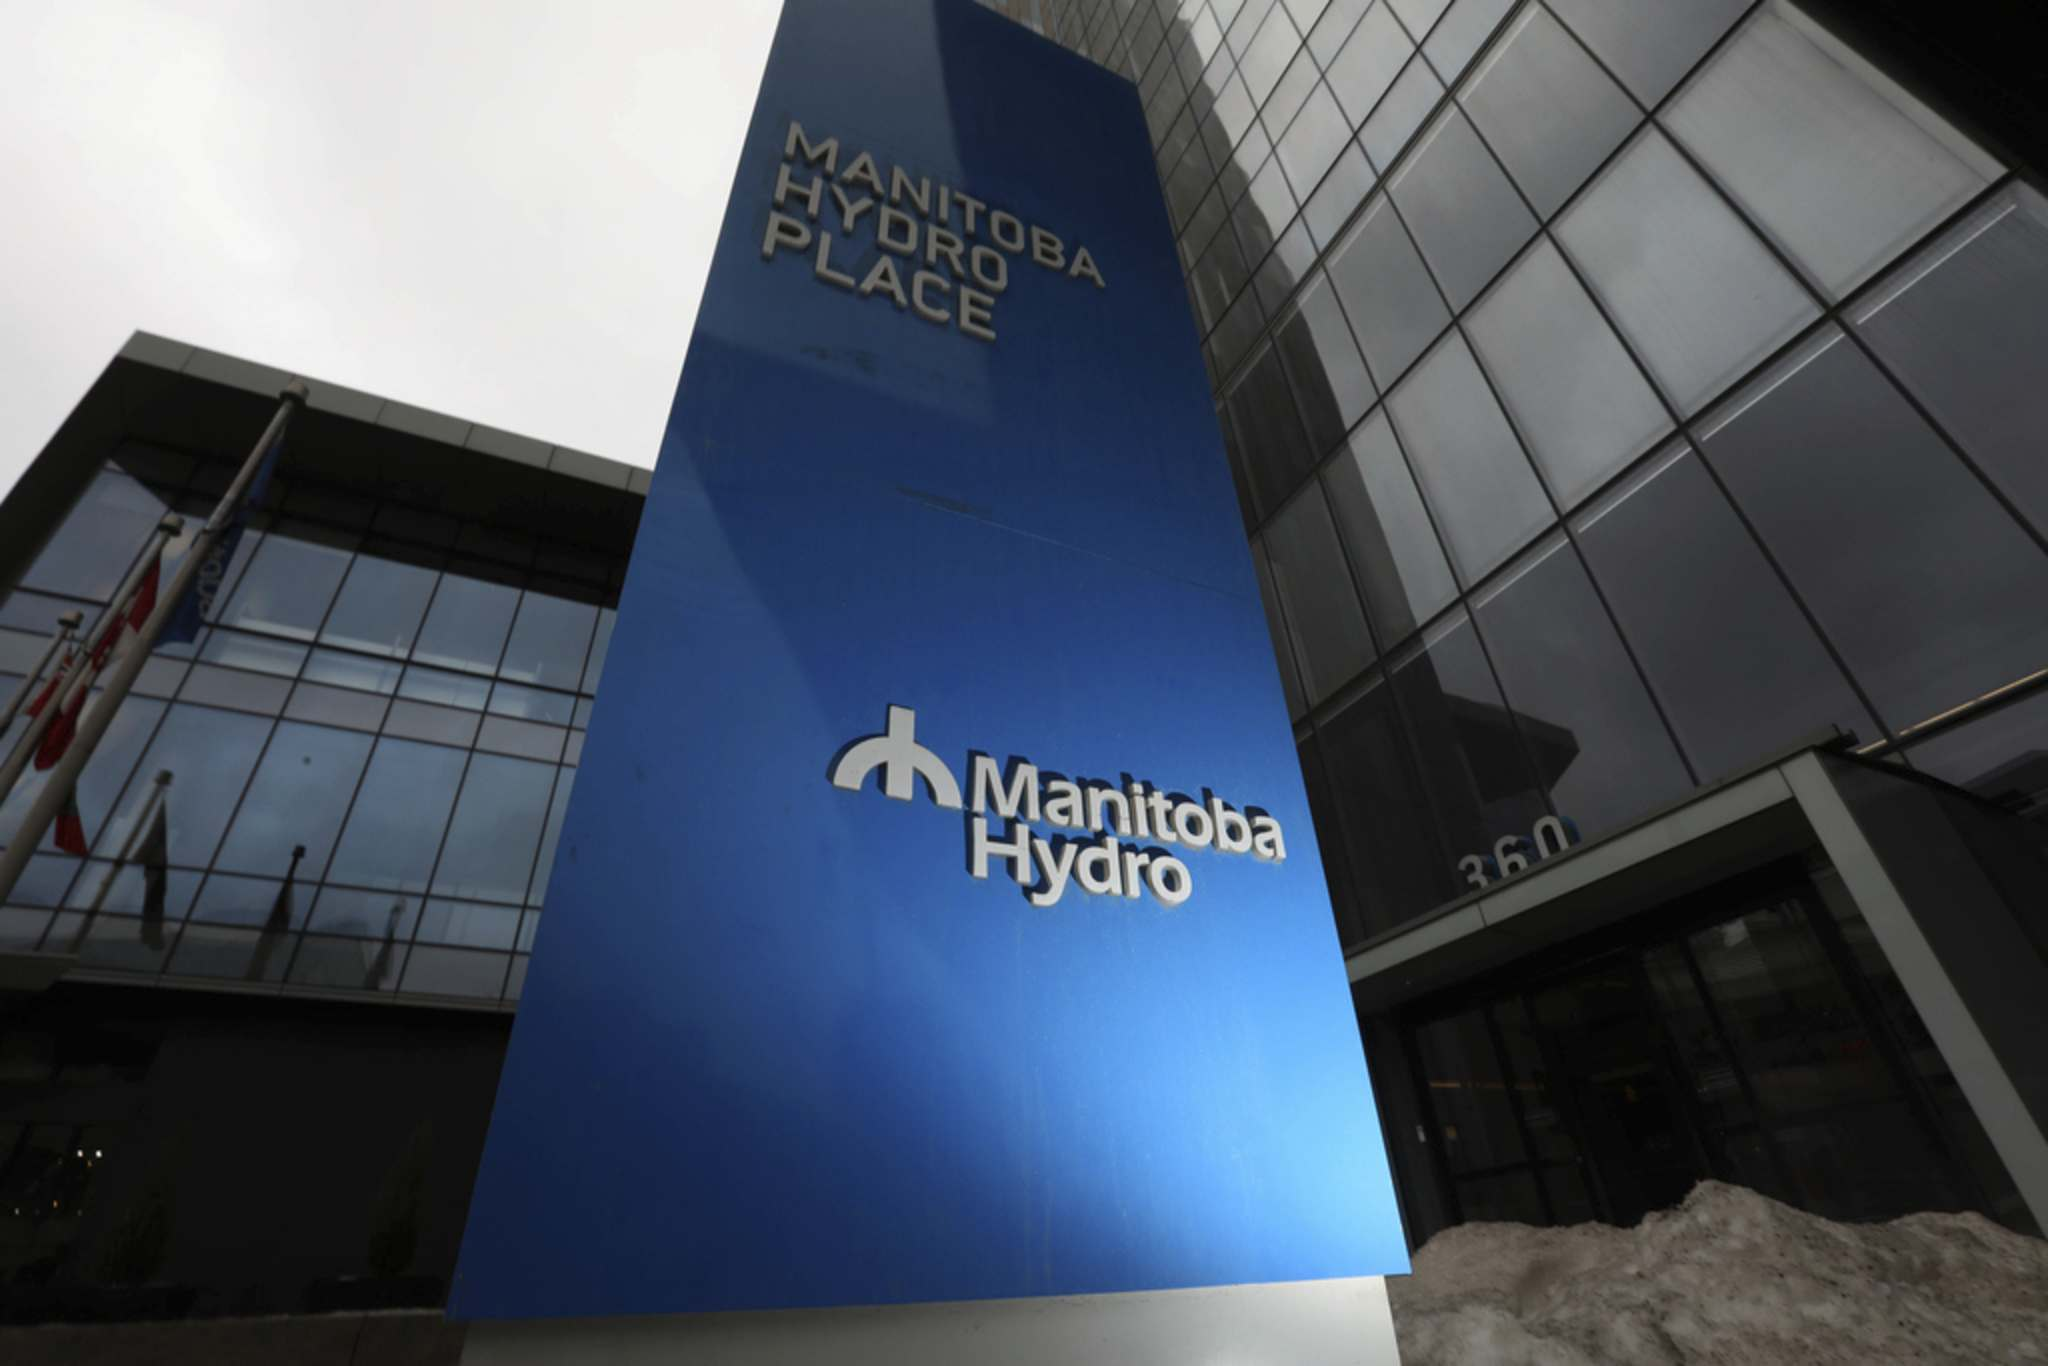 What the premier doesn't say, however, is the S&P Global Ratings assessment includes Manitoba Hydro's debt.